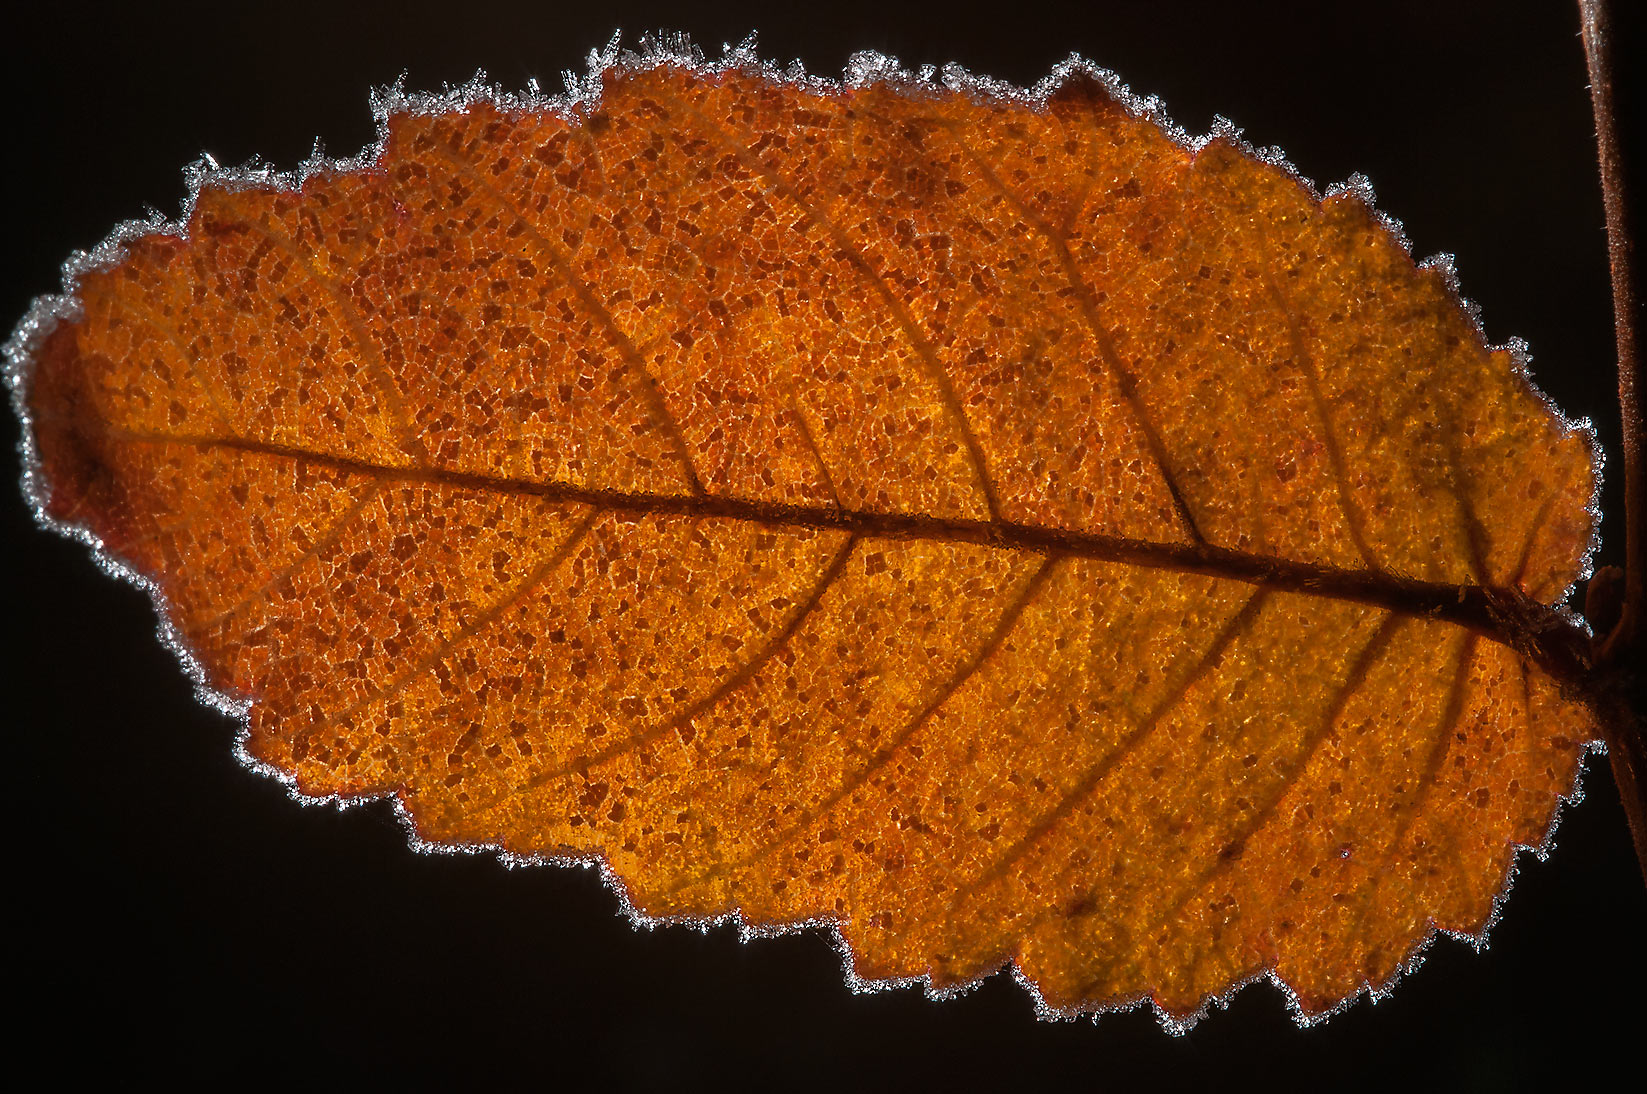 Back lit elm leaf in Lick Creek Park. College Station, Texas